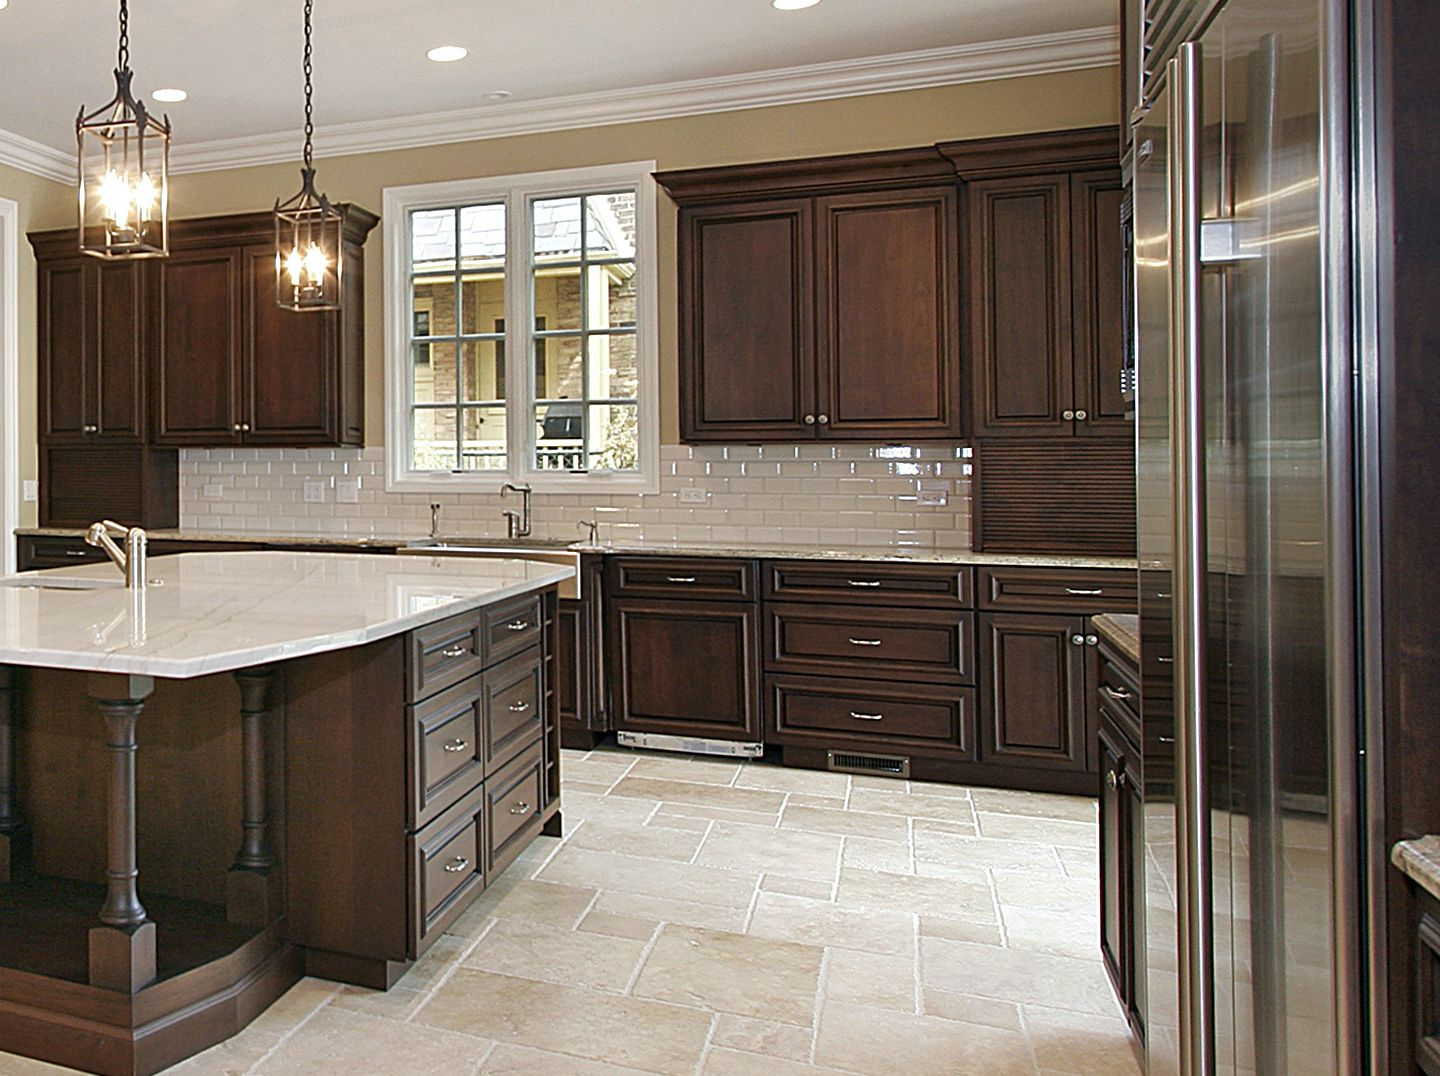 Kitchen Colors With Brown Cabinets Kitchen Design Ideas For Small Kitchens Chec Dark Brown Kitchen Cabinets Brown Kitchen Cabinets Kitchen Backsplash Designs